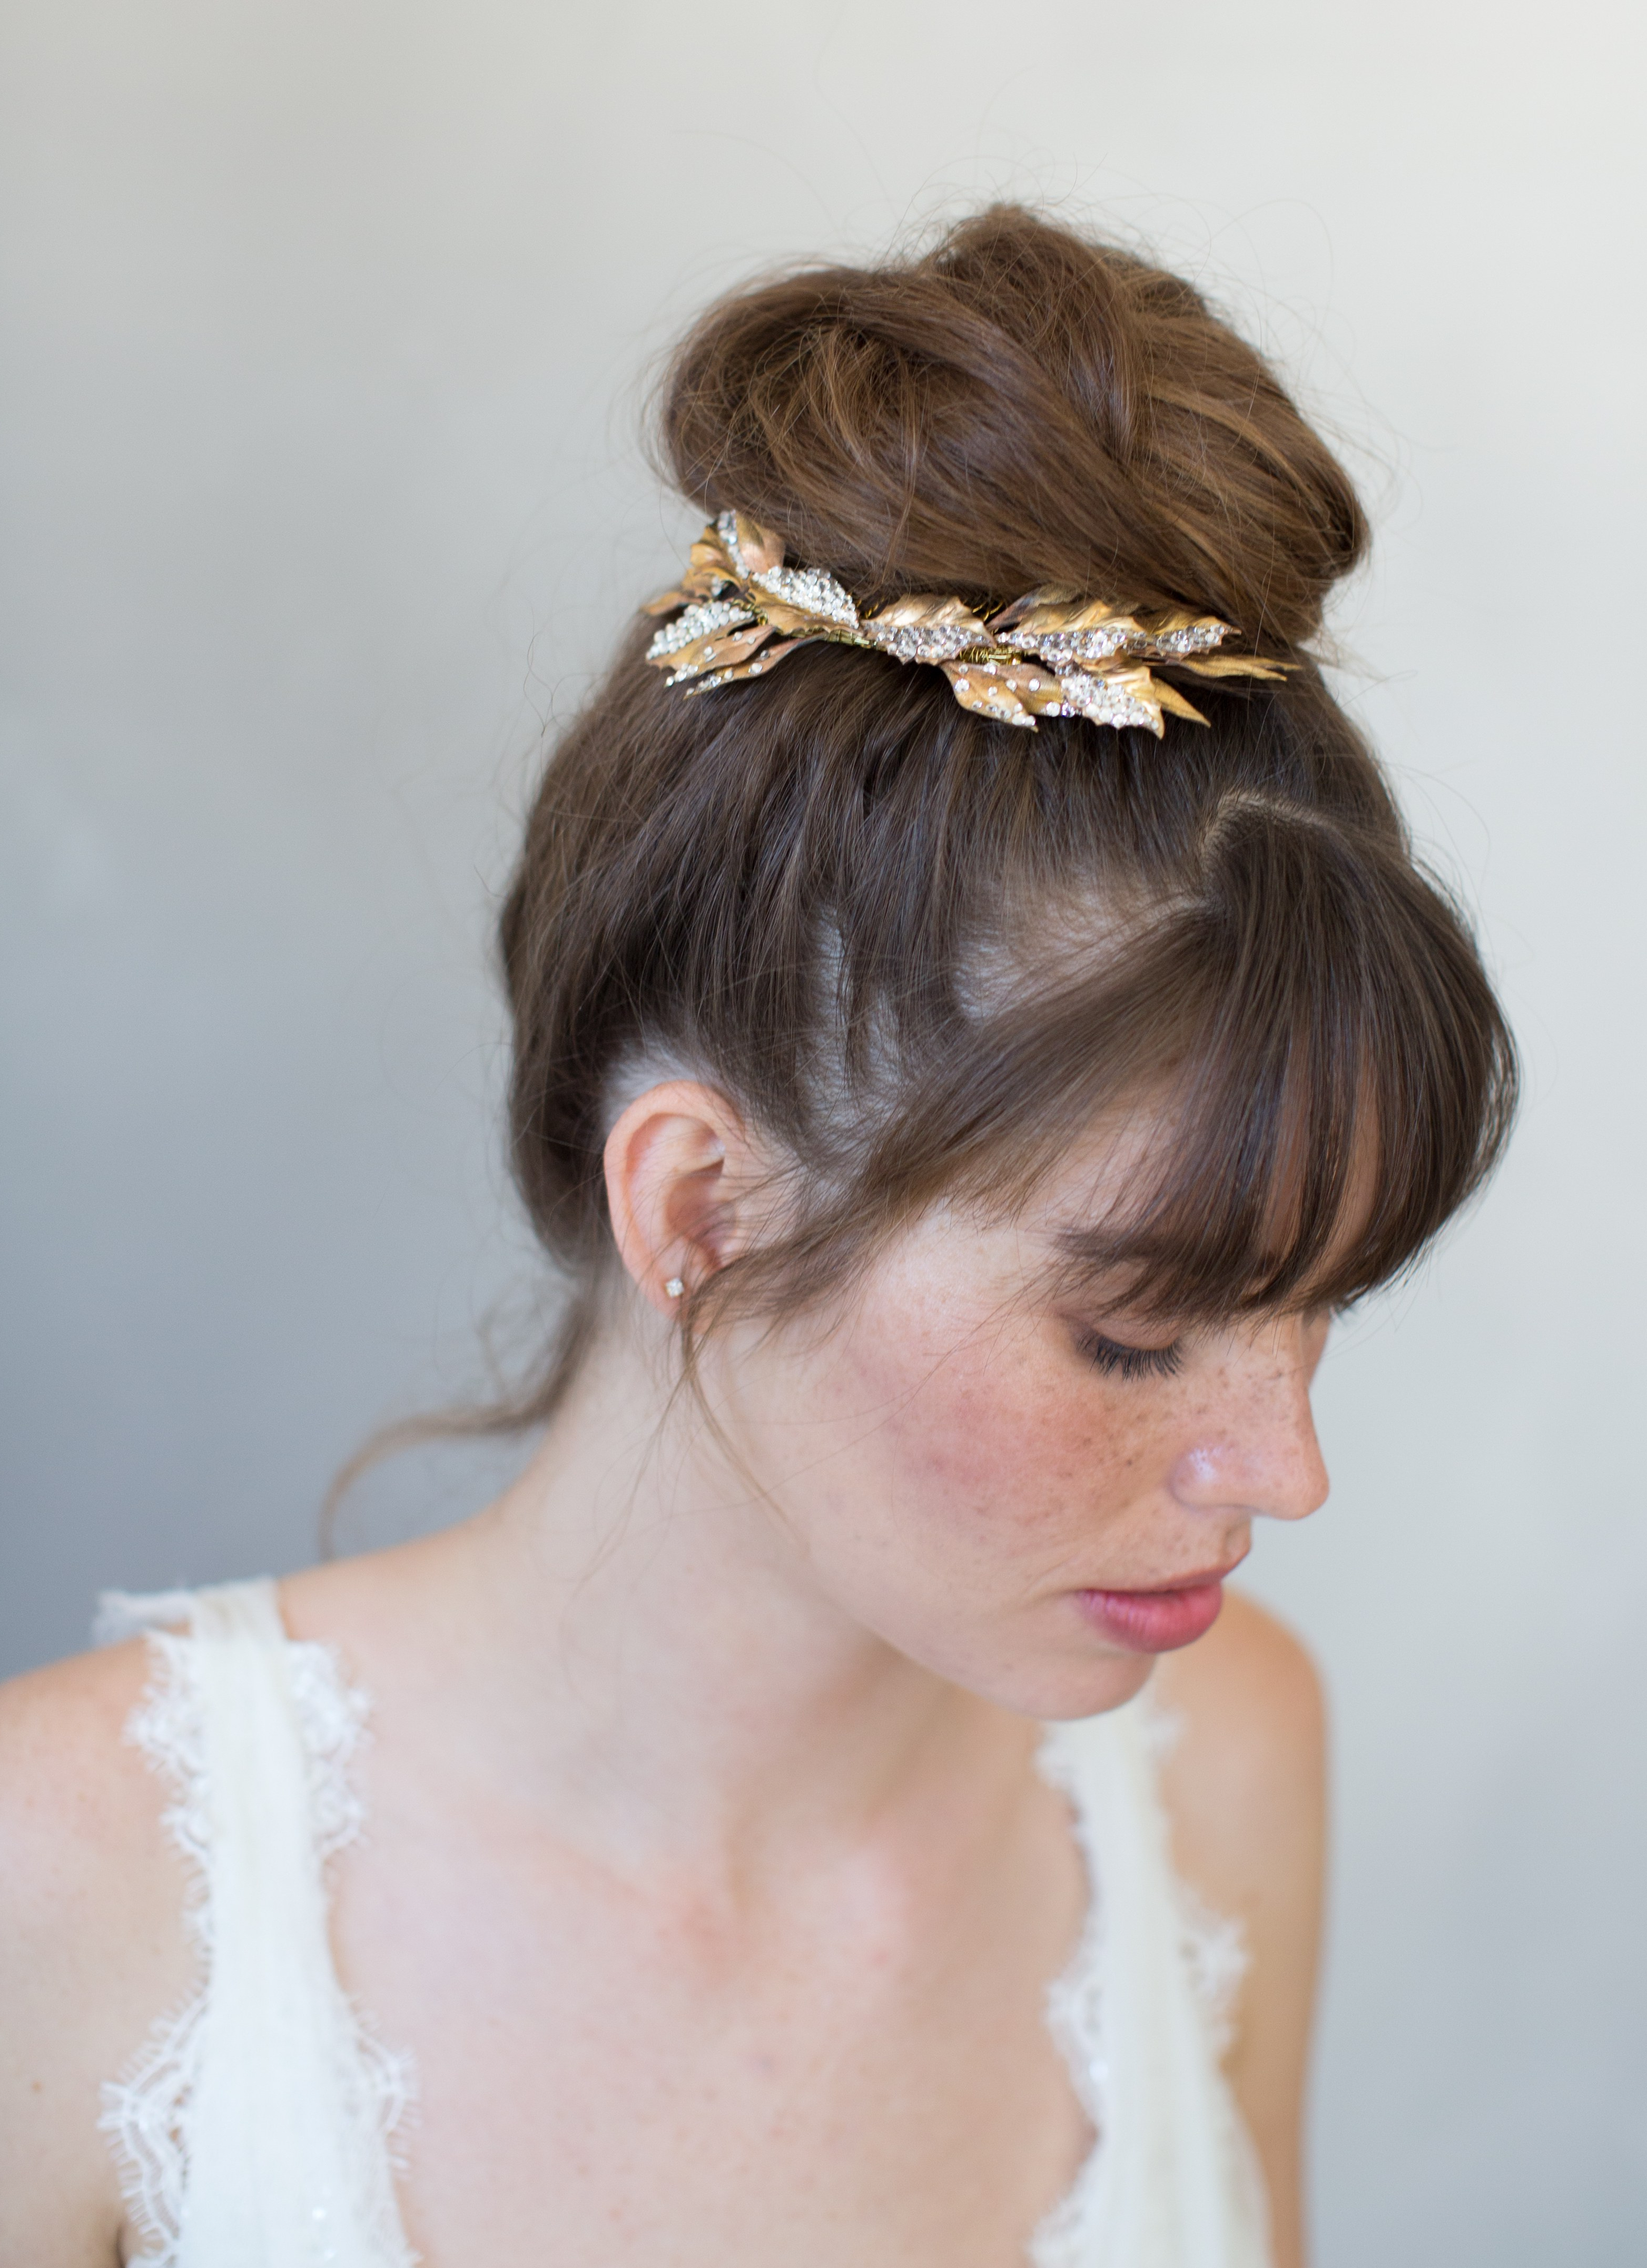 These Enchanting Hair Accessories Are Perfect For A Rustic Wedding For Most Popular Undone Low Bun Bridal Hairstyles With Floral Headband (Gallery 9 of 20)